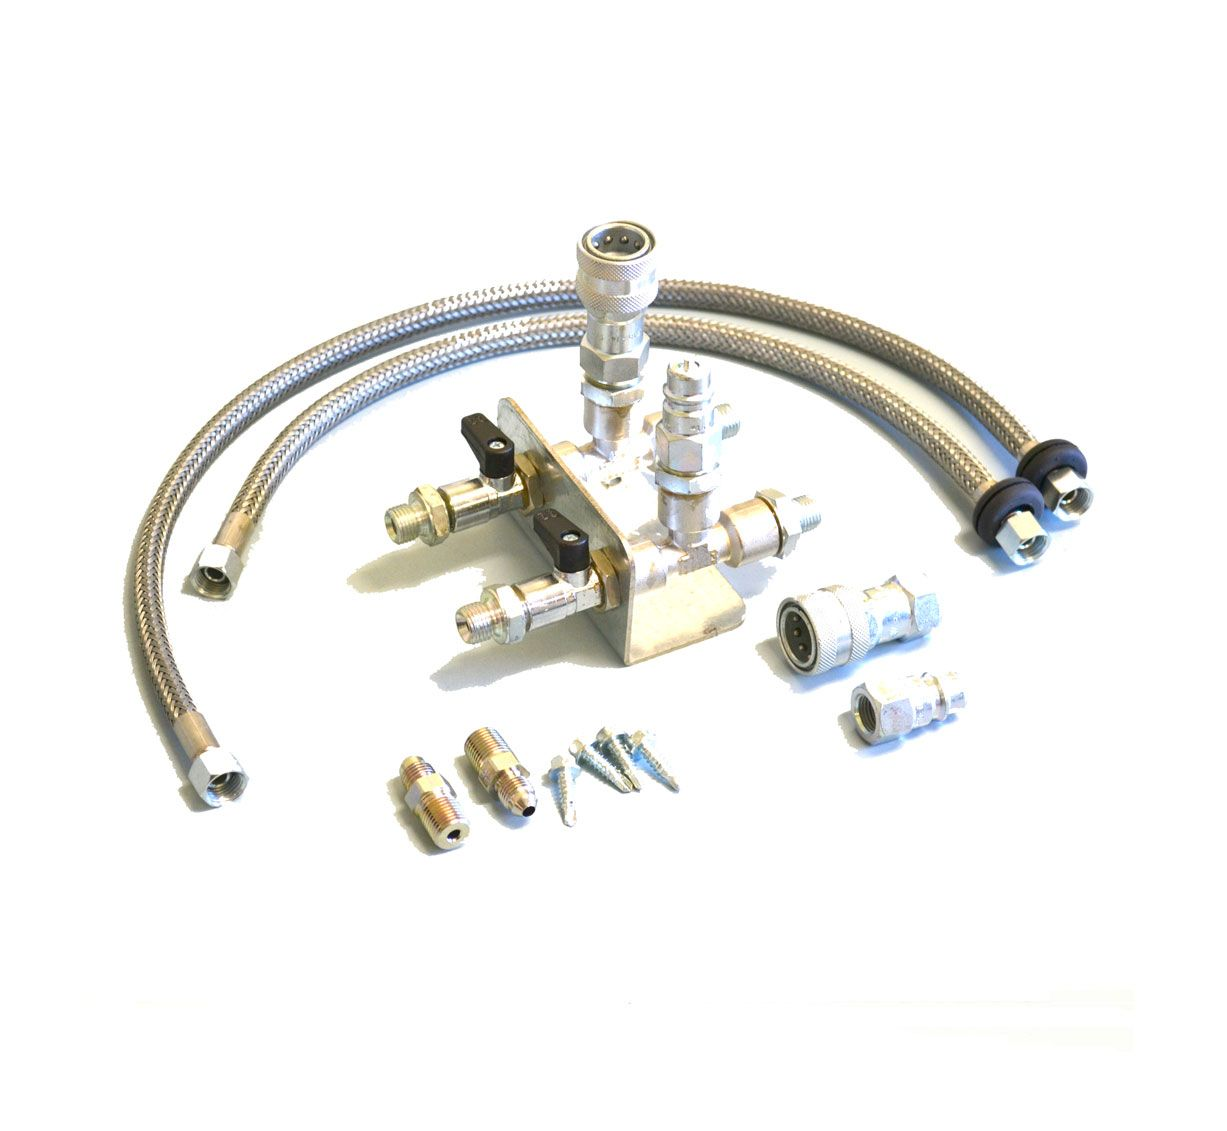 External Fuel Tank Kit